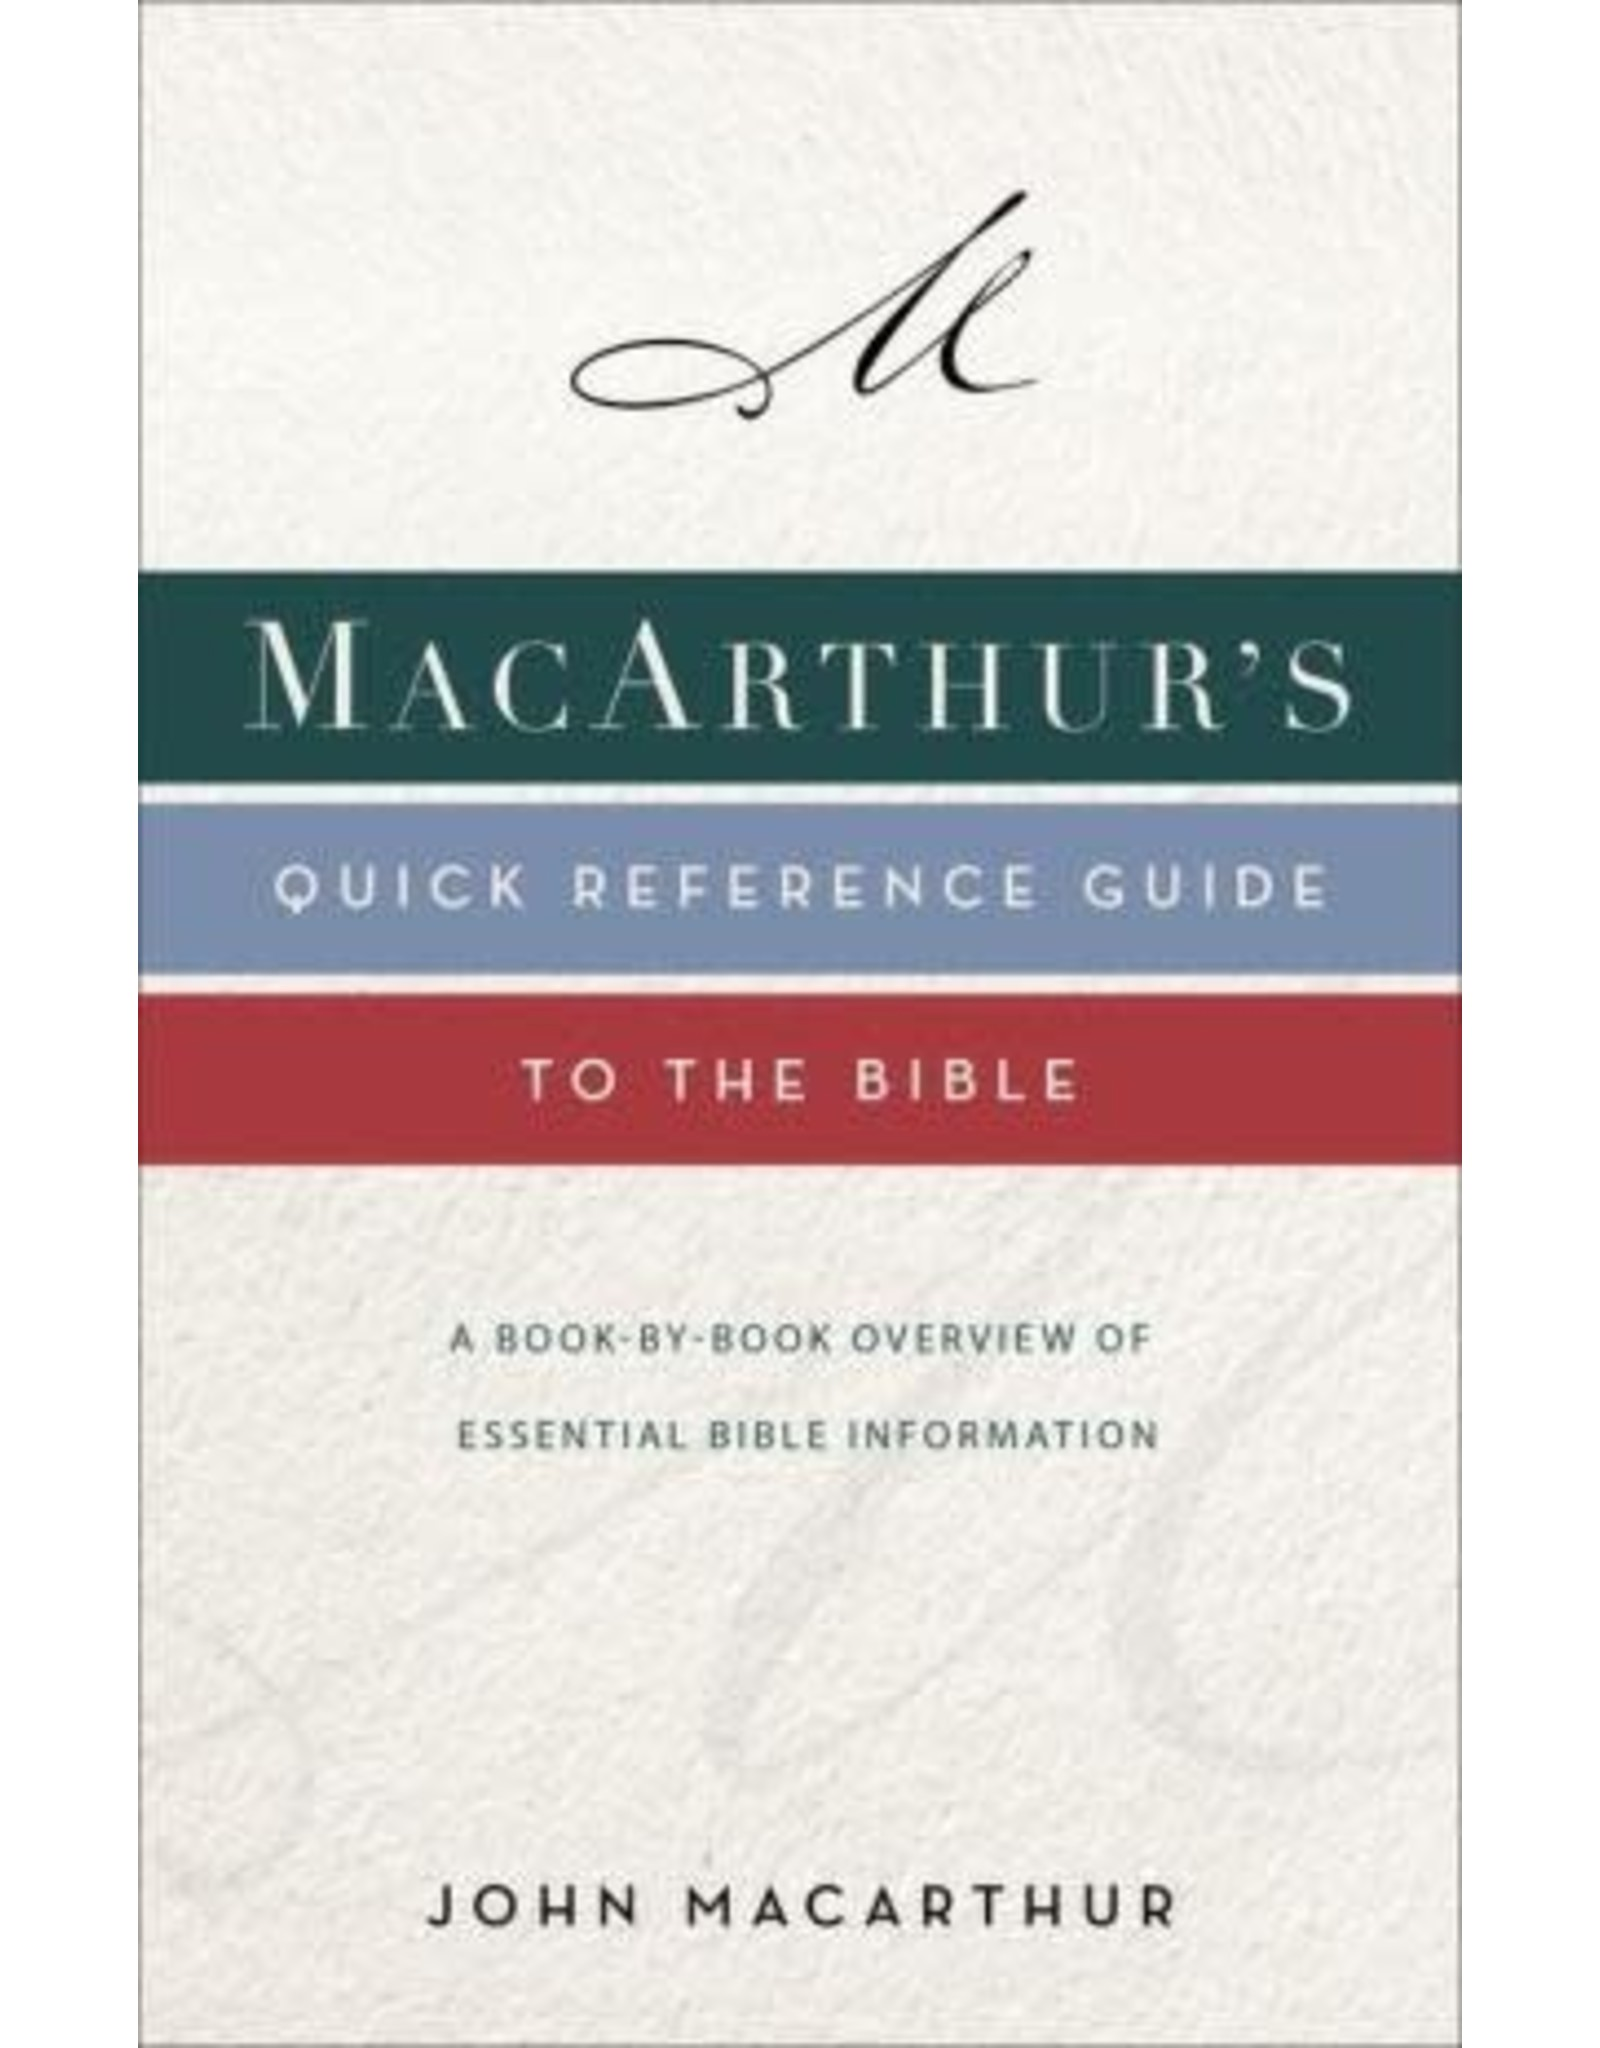 Harper Collins / Thomas Nelson / Zondervan MacArthur's Quick Reference Guide to the Bible